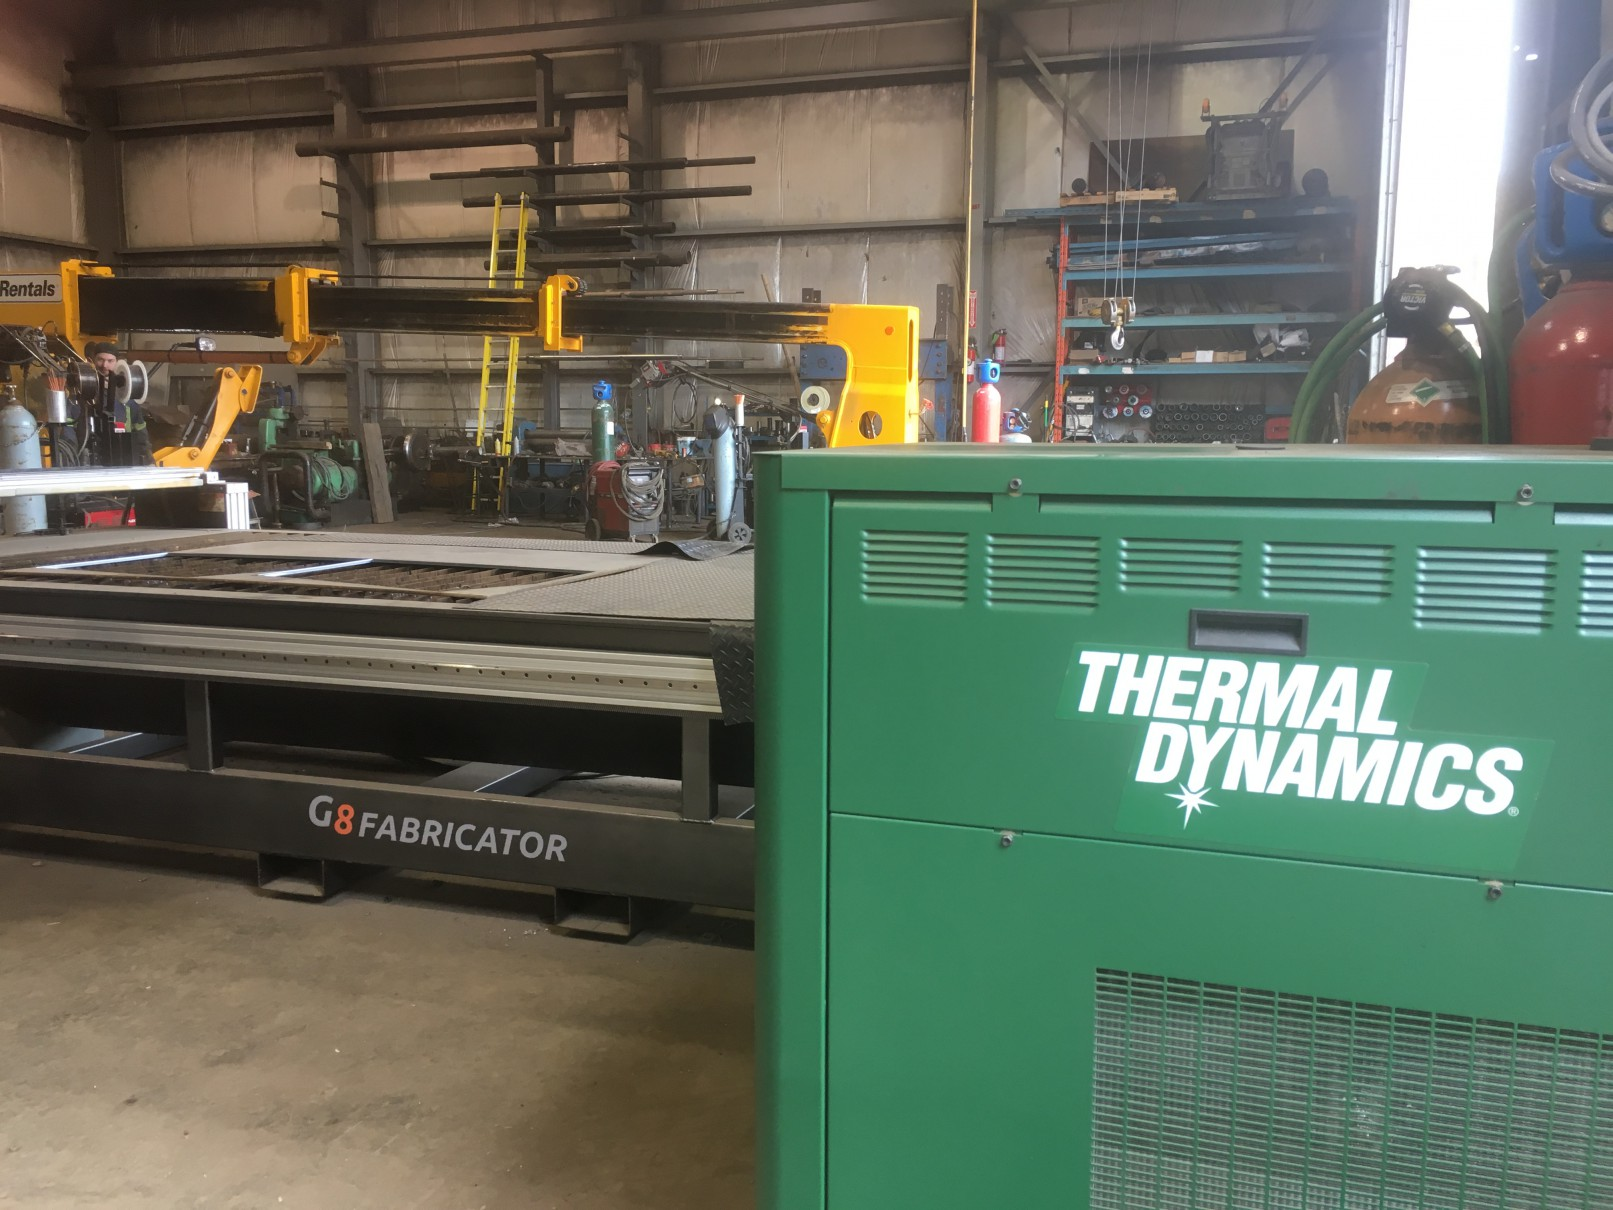 Thermal dynamic machine